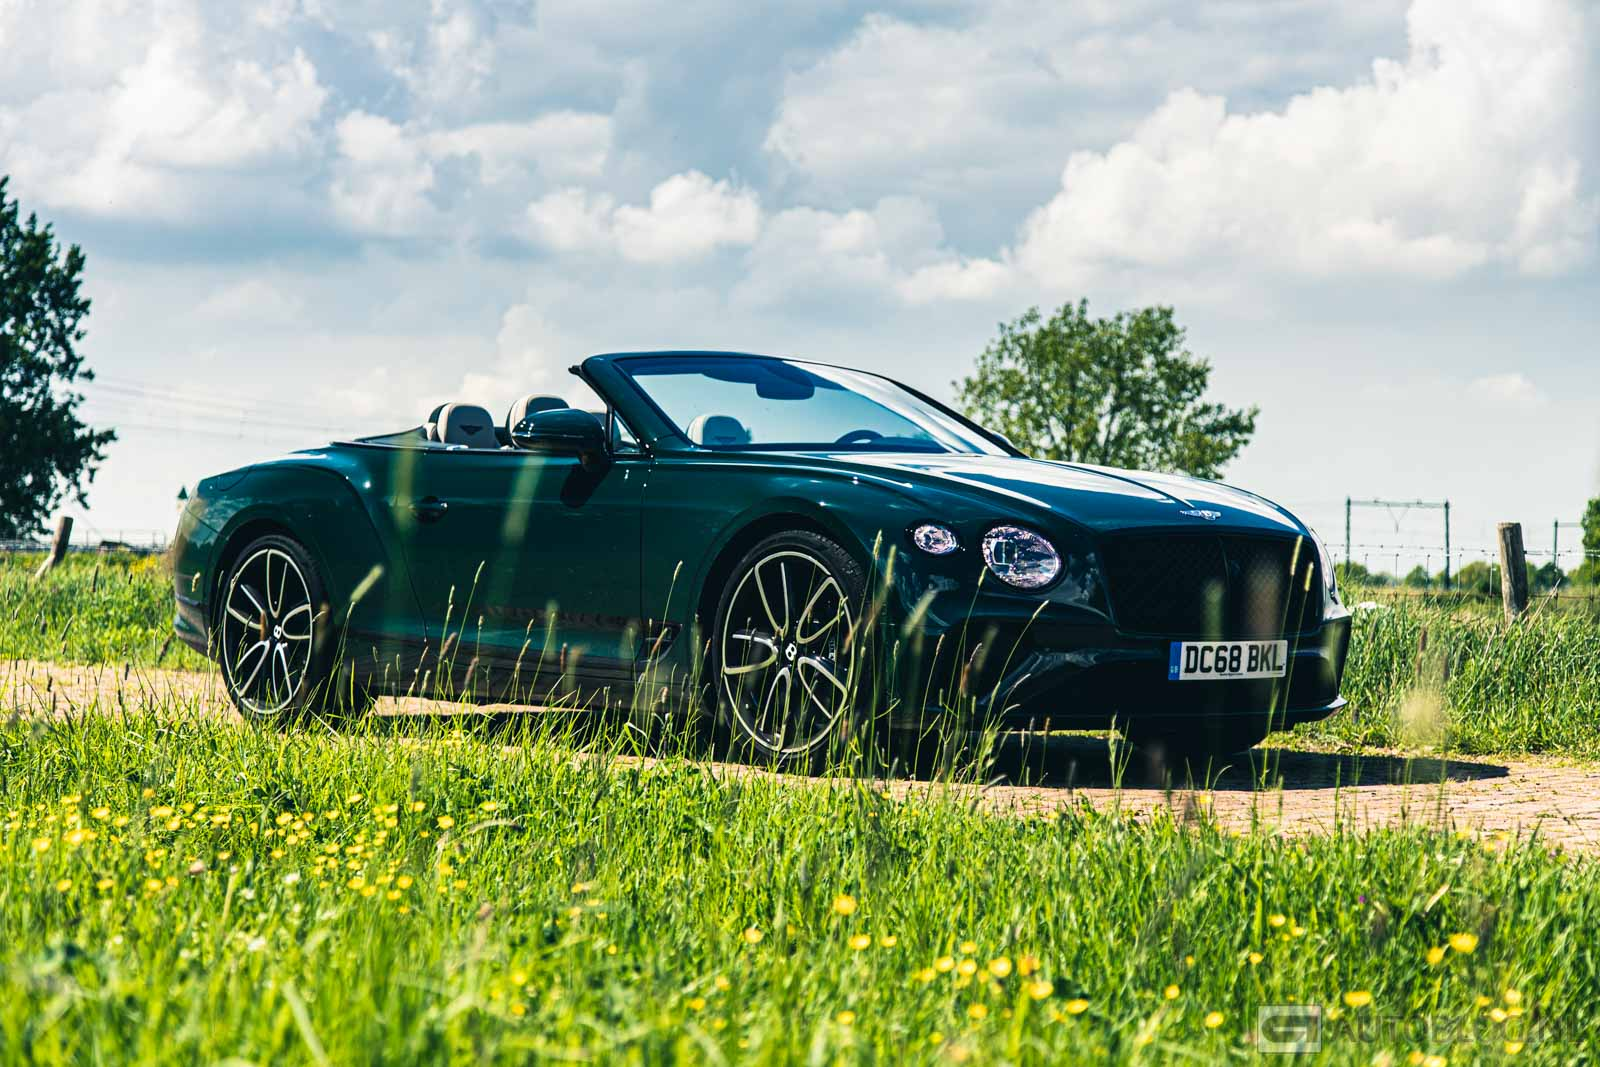 Bentley-Continental-GTC-2019-2433.jpg